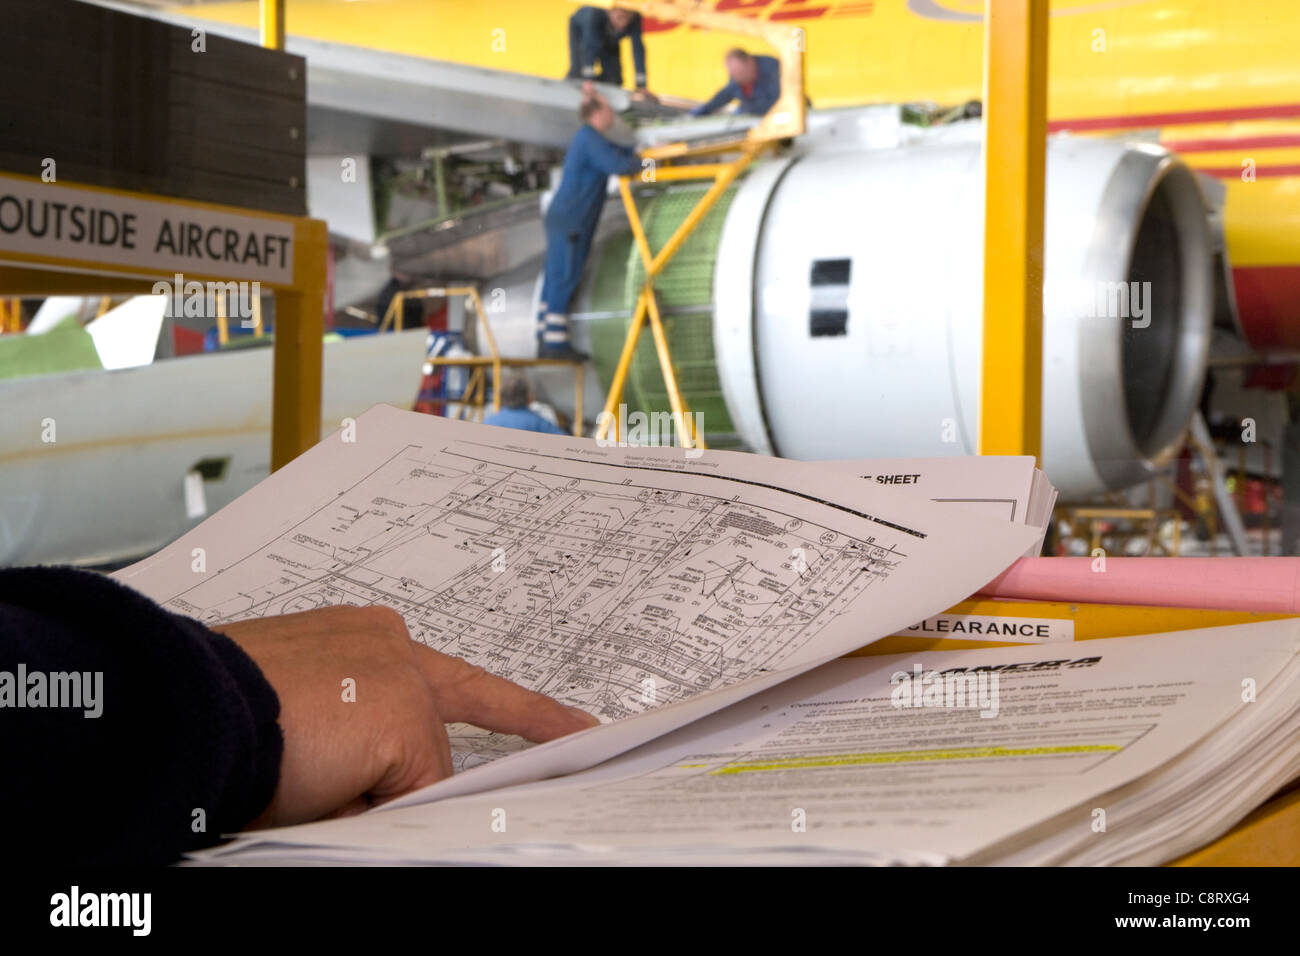 boeing 757 maintenance schedule - stock image